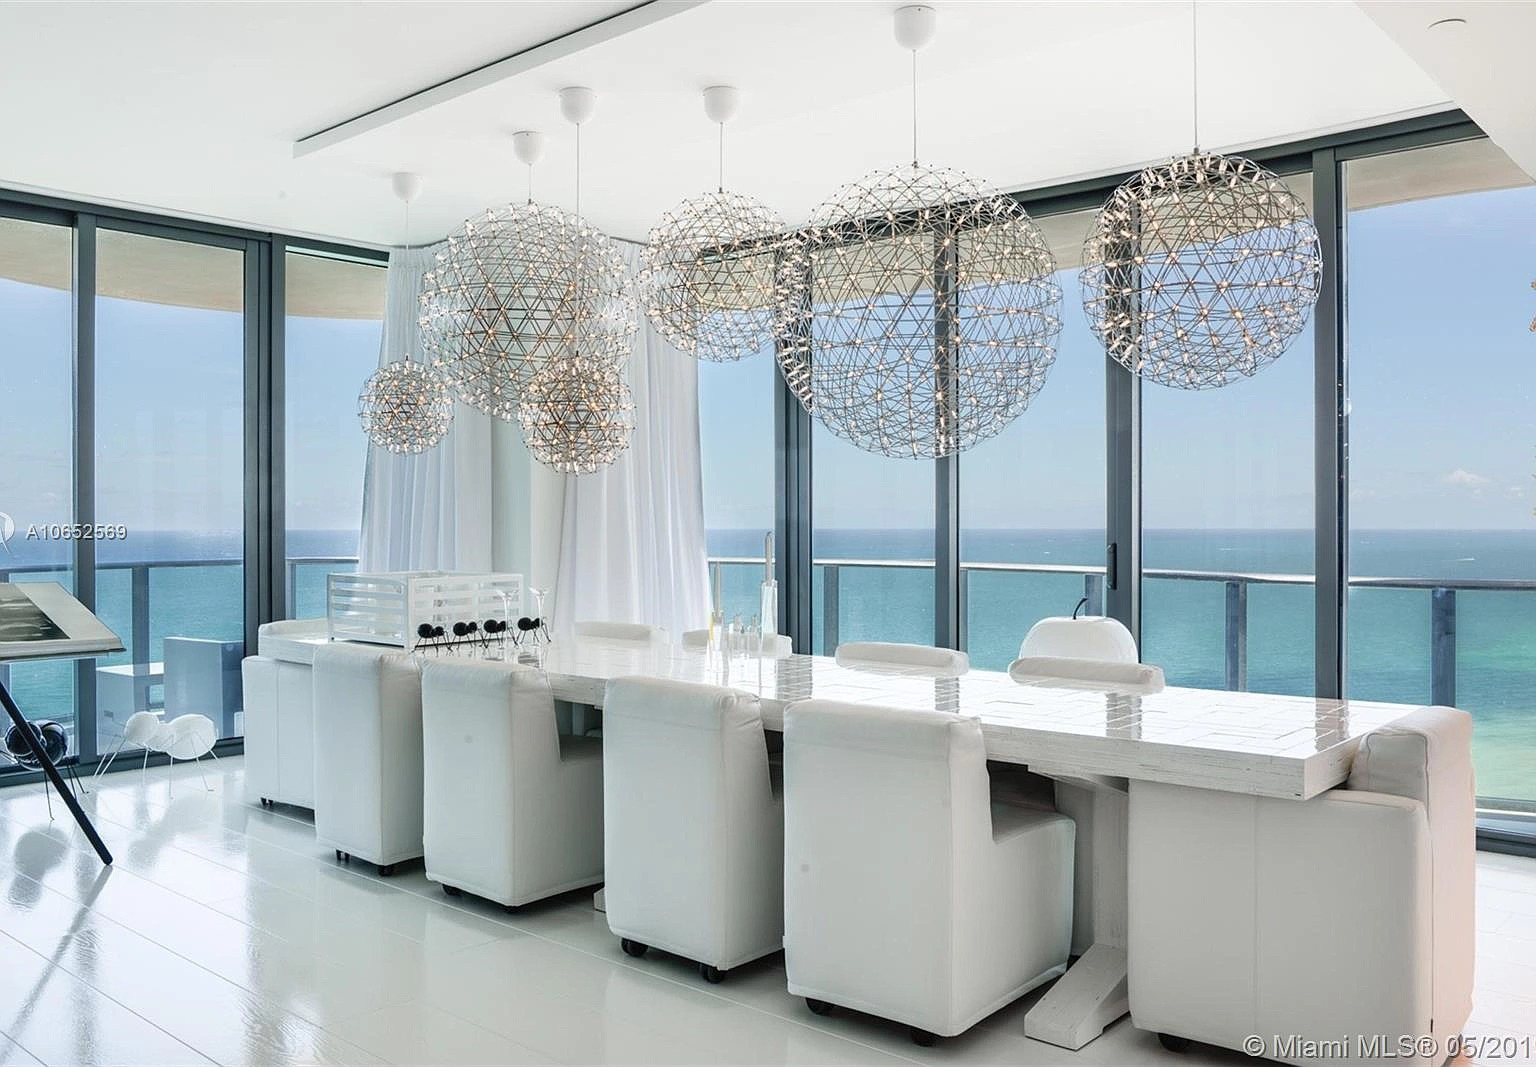 19575 Collins Ave UNIT 30, Sunny Isles Beach, FL 33160 - $15,000,000 home for sale, house images, photos and pics gallery